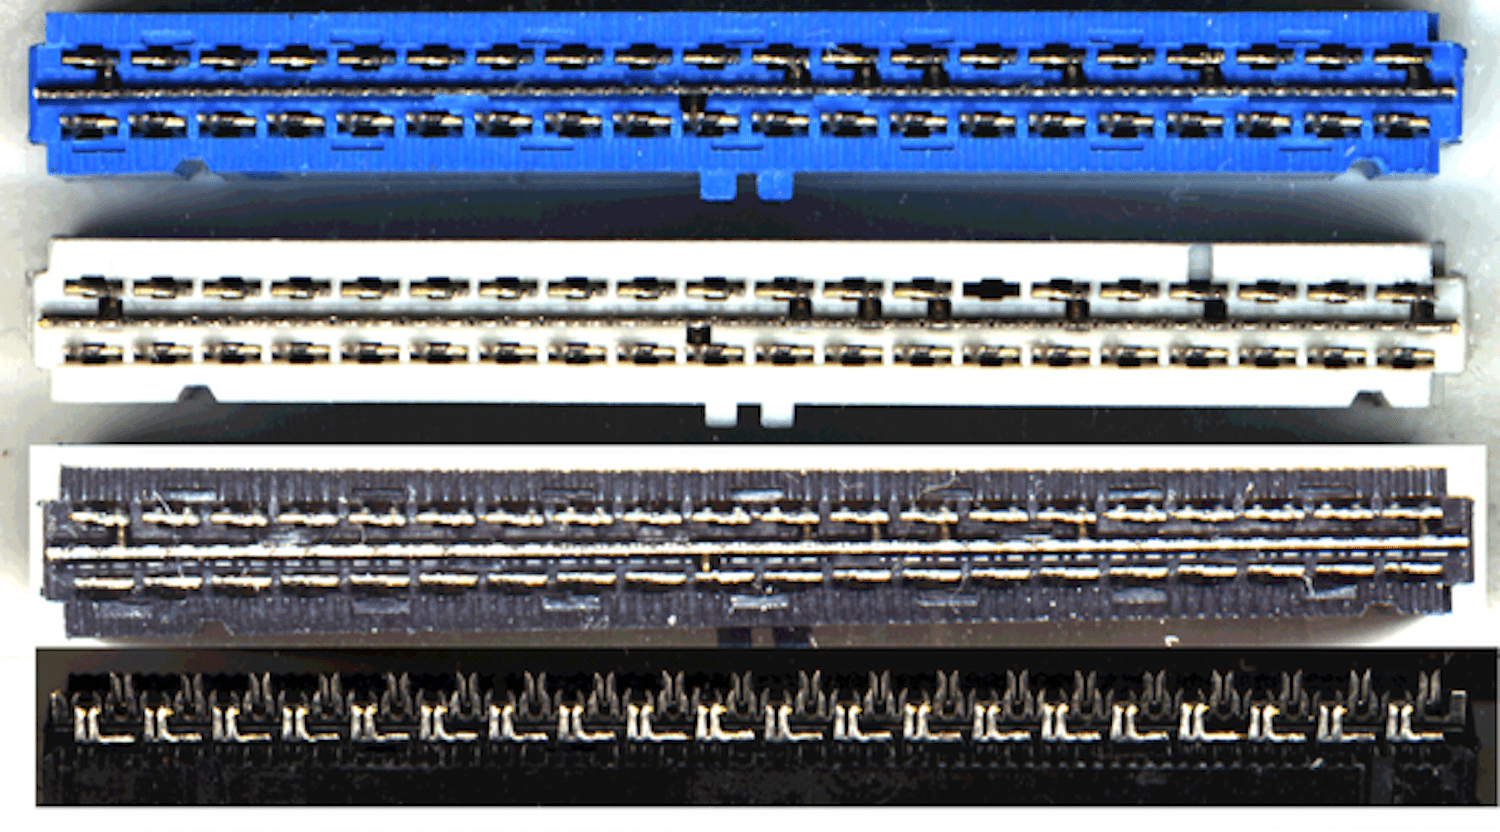 What Is a PATA Cable or Connector?